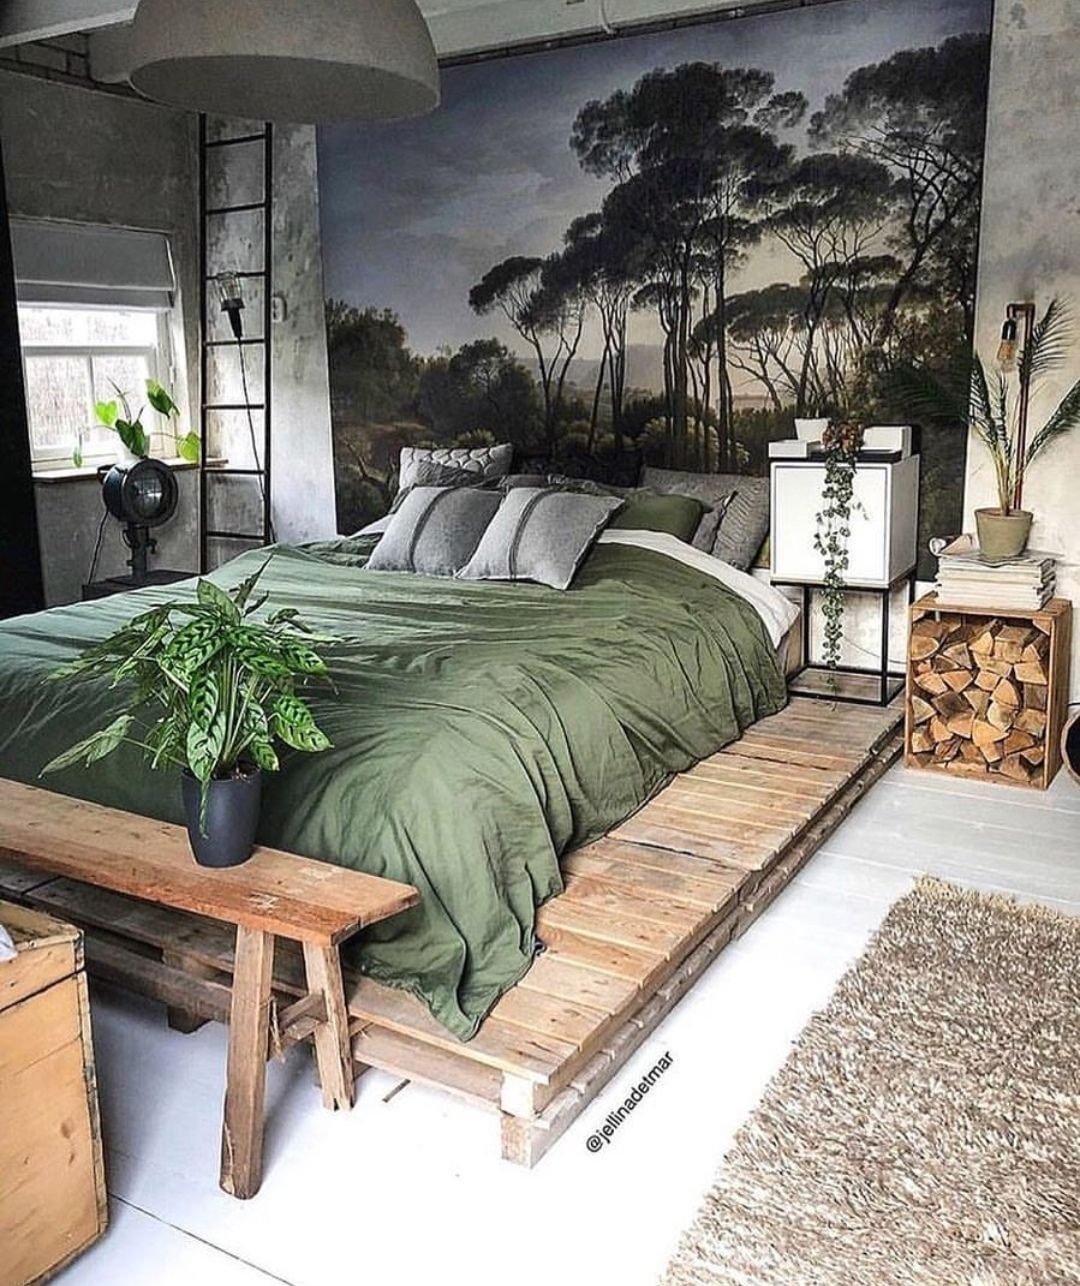 New The 10 Best Home Decor With Pictures L Ambiance Nature